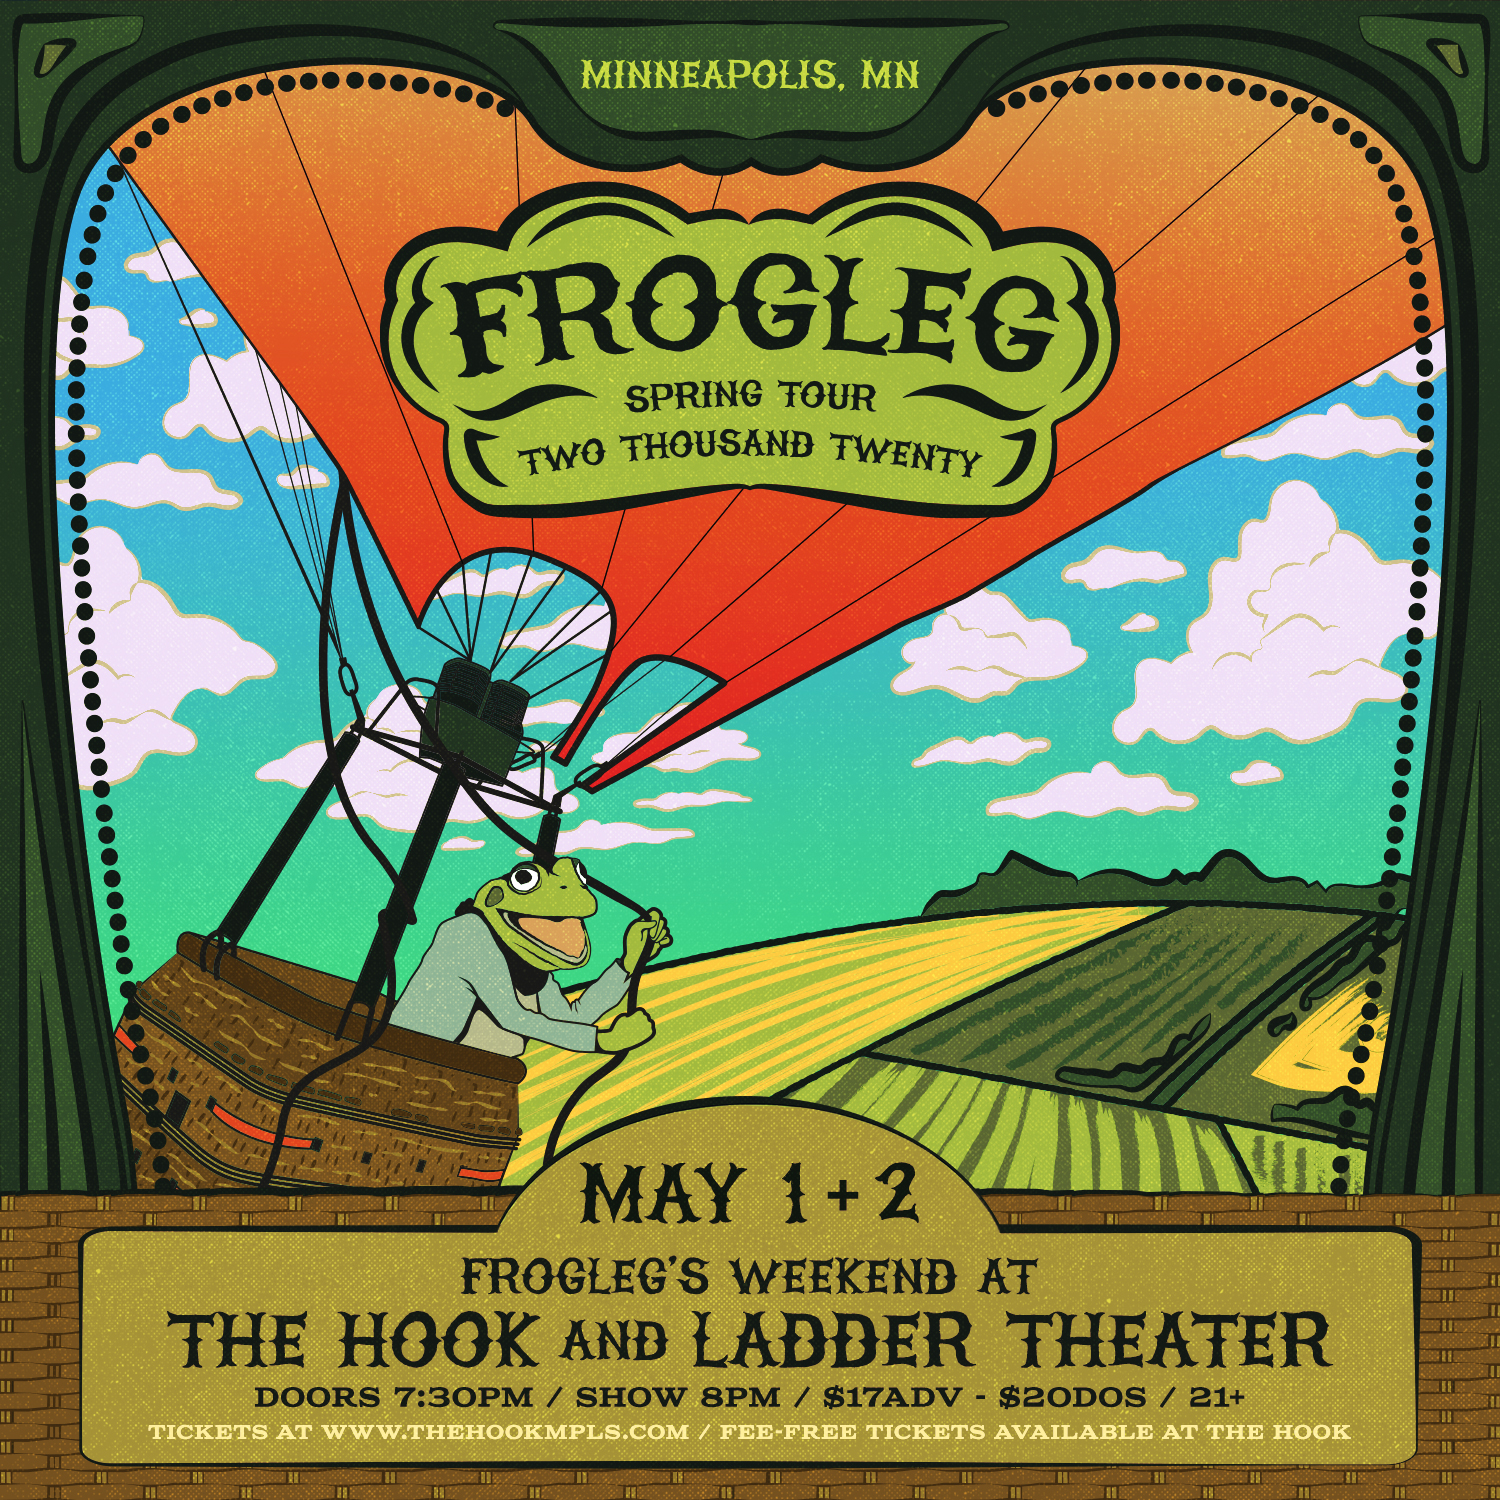 Frogleg's Weekend At The Hook! - Friday, May 1 & Saturday May 2 - The Hook and Ladder Theater